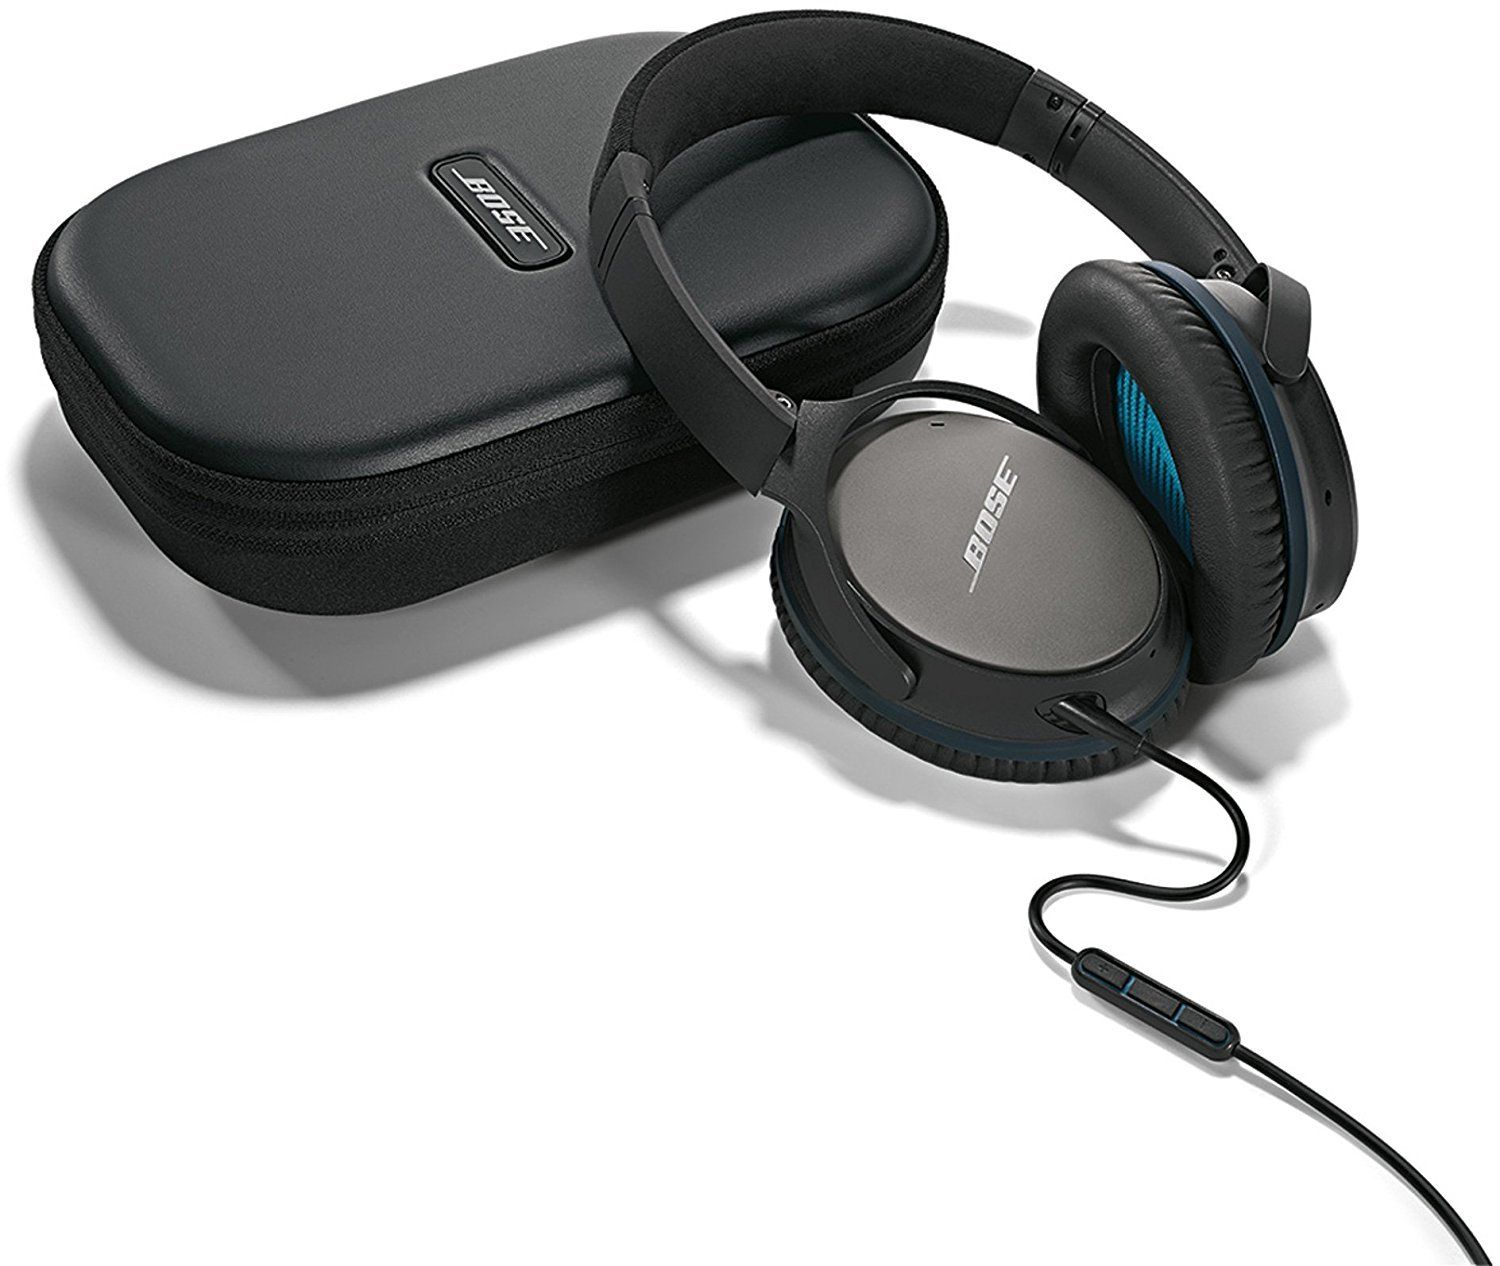 Bose Quietcomfort 25 Acoustic Noise Cancelling Headphones For Apple Devices Black Wired 3 5mm Ac Travel Headphones Noise Cancelling Headphones Headphones